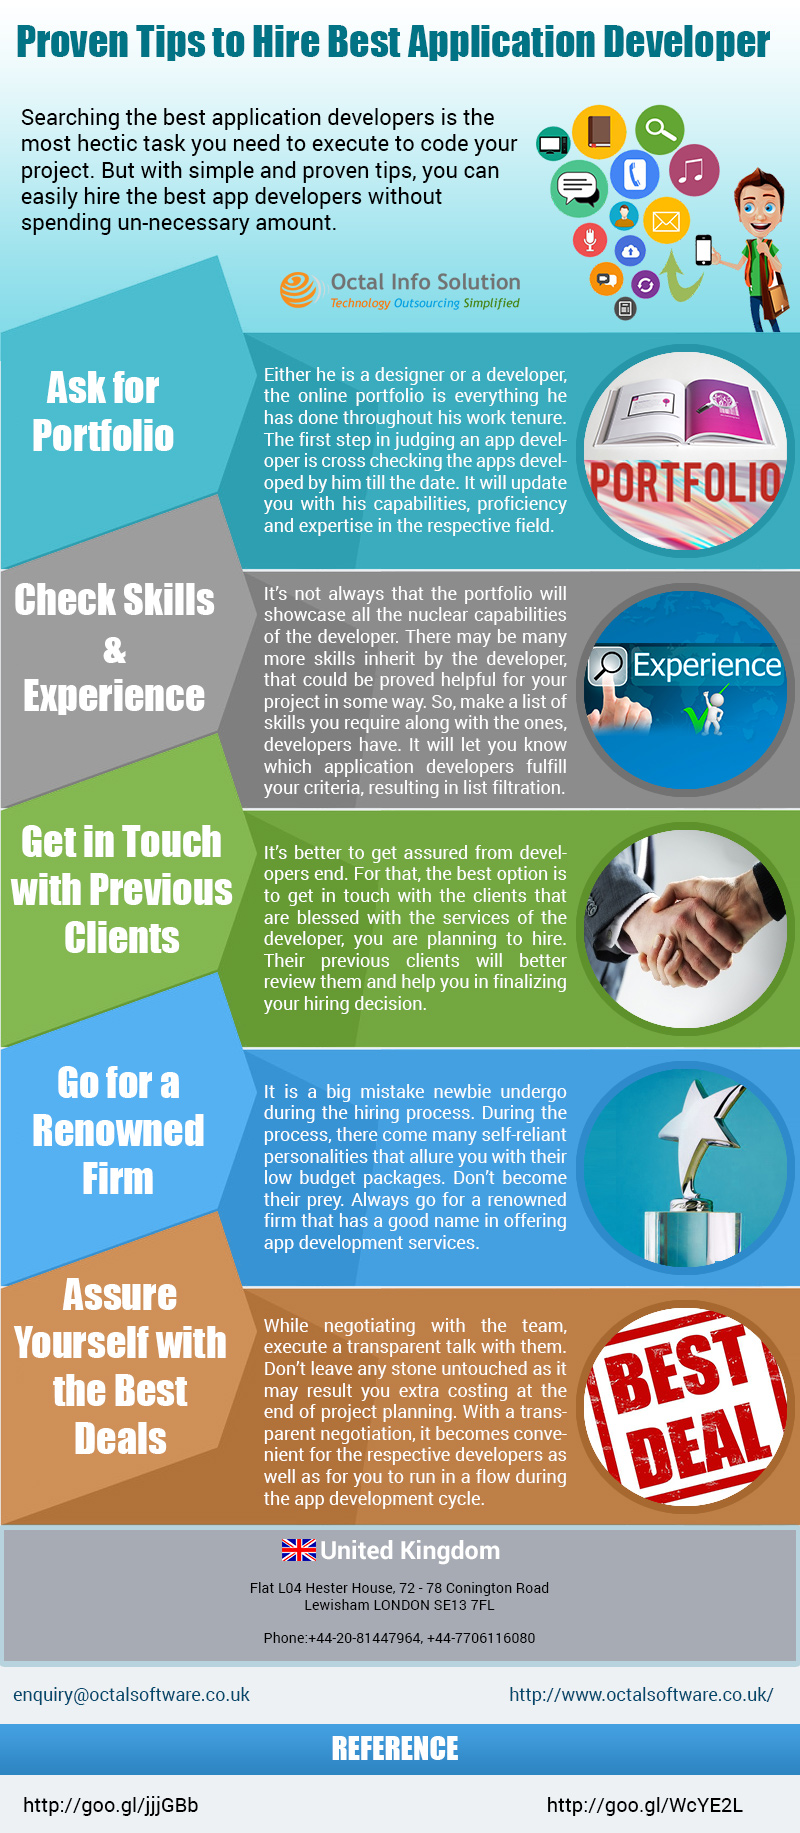 Tips to Hire Best Application Developer [Infographic]